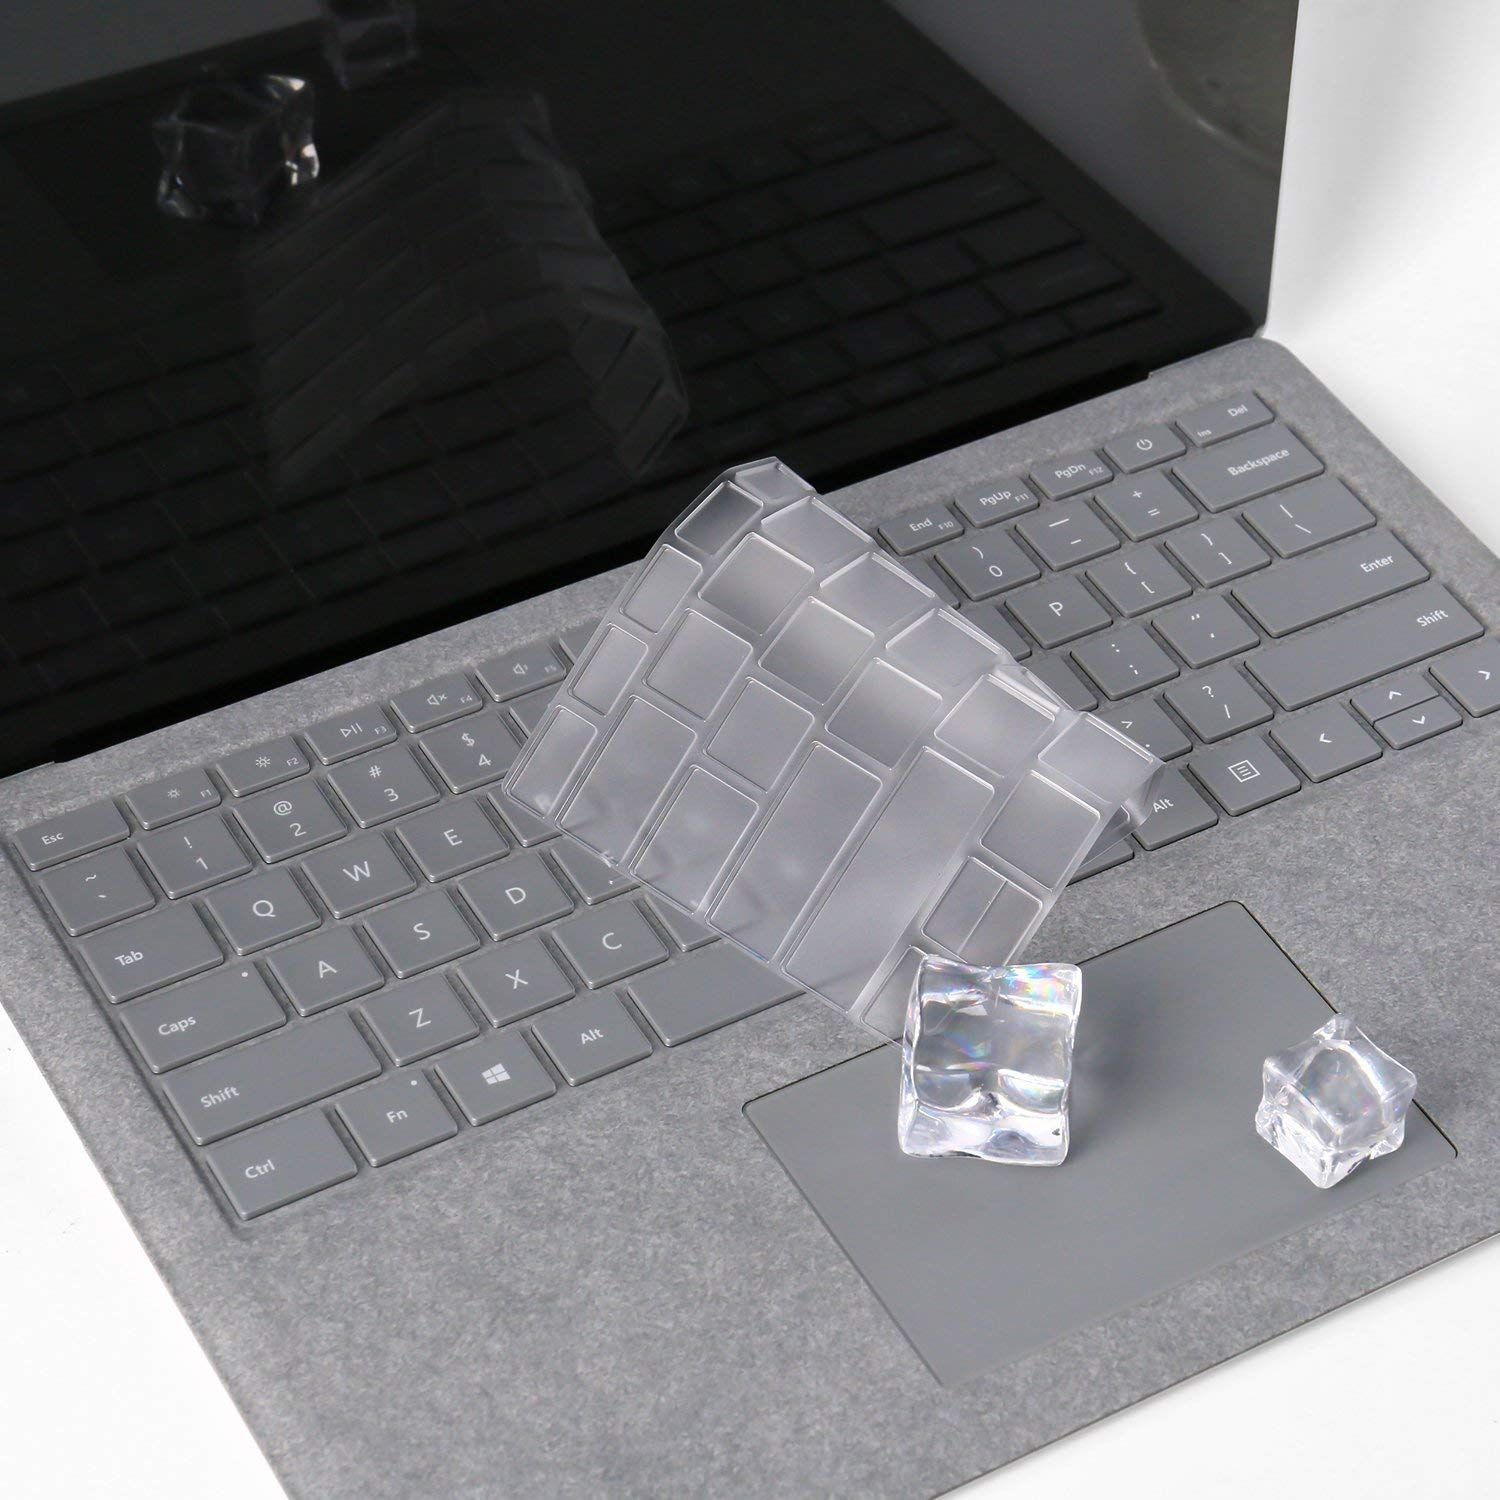 Cheap Surface Keyboard Type, find Surface Keyboard Type